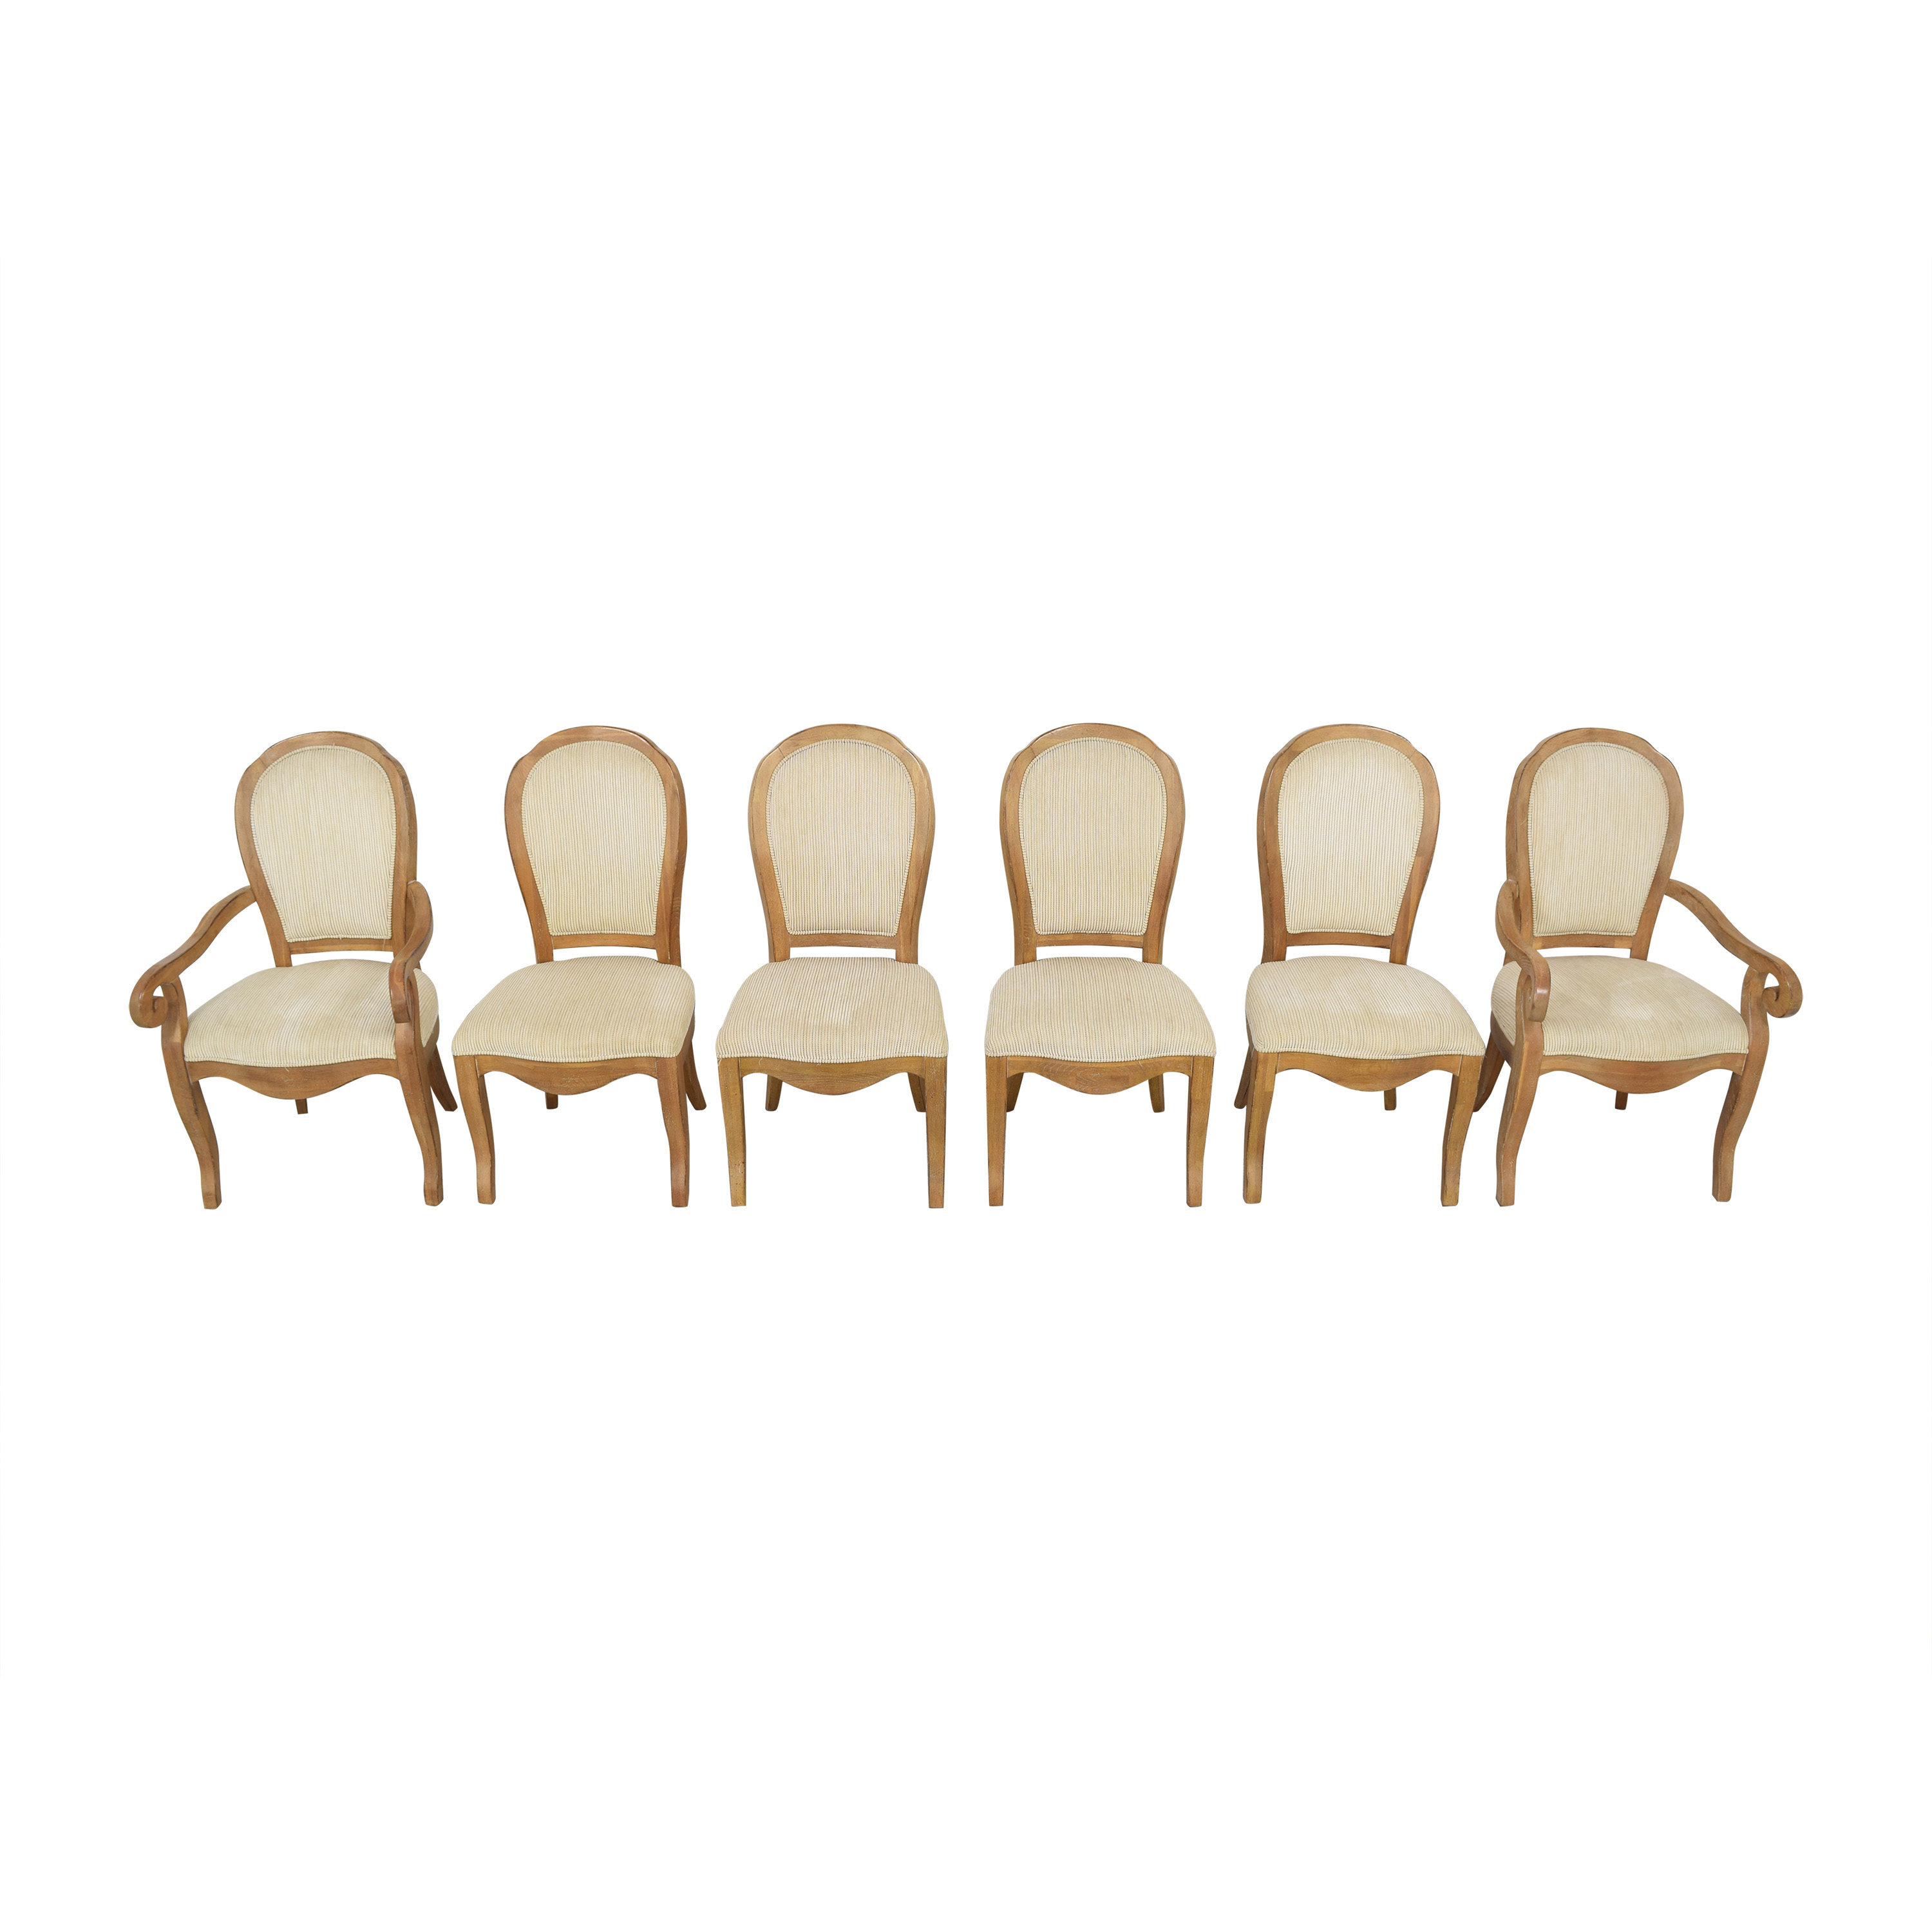 Drexel Heritage Drexel Heritage Dining Chairs for sale